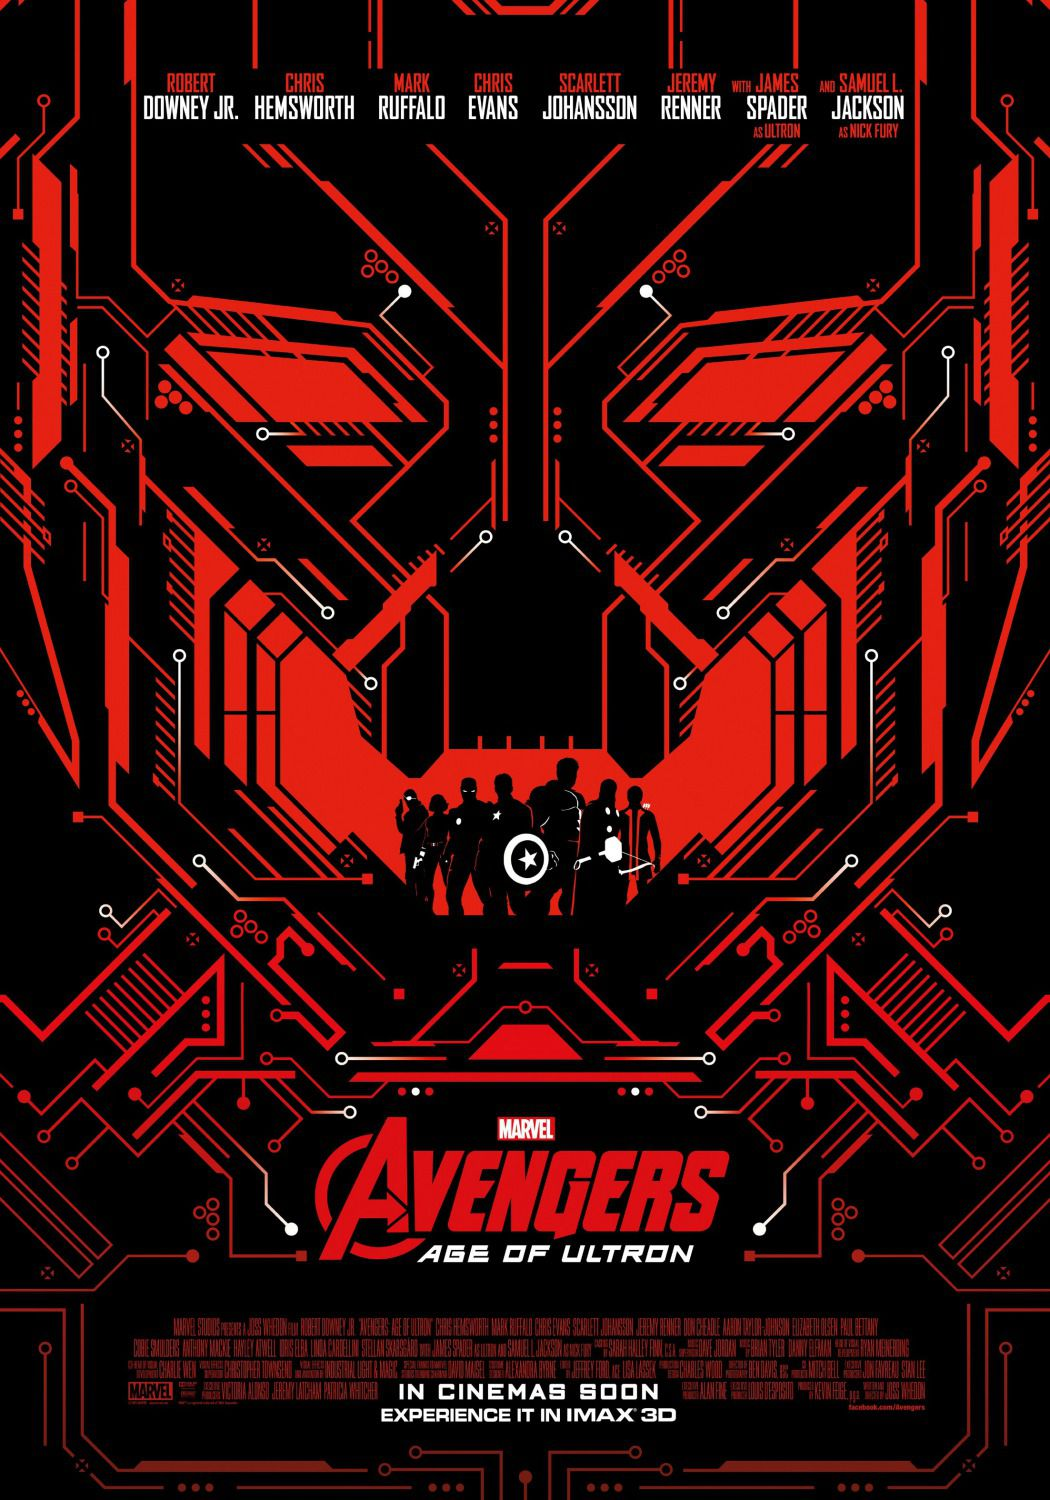 Avengers 2 - Age of Ultron . poster logo Ultron